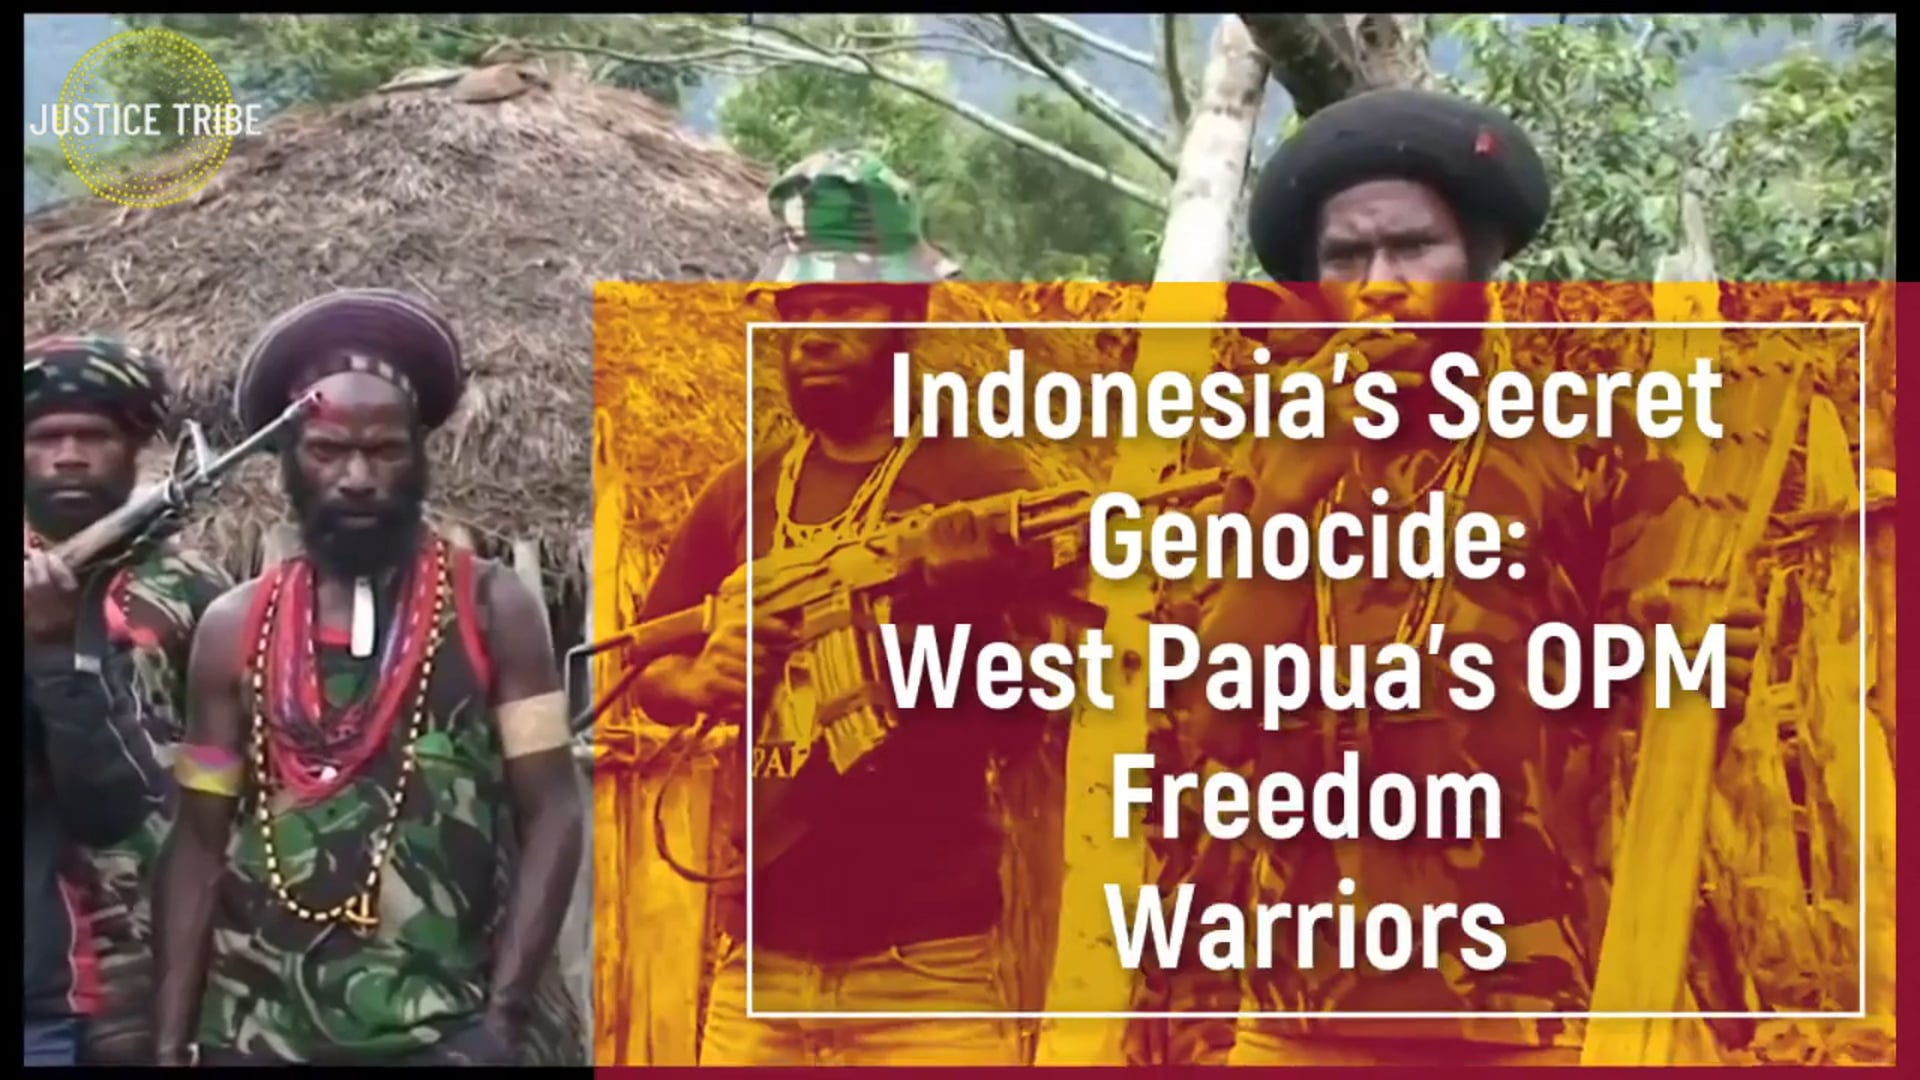 Indonesia's Secret Genocide: West Papua's OPM Freedom Warriors